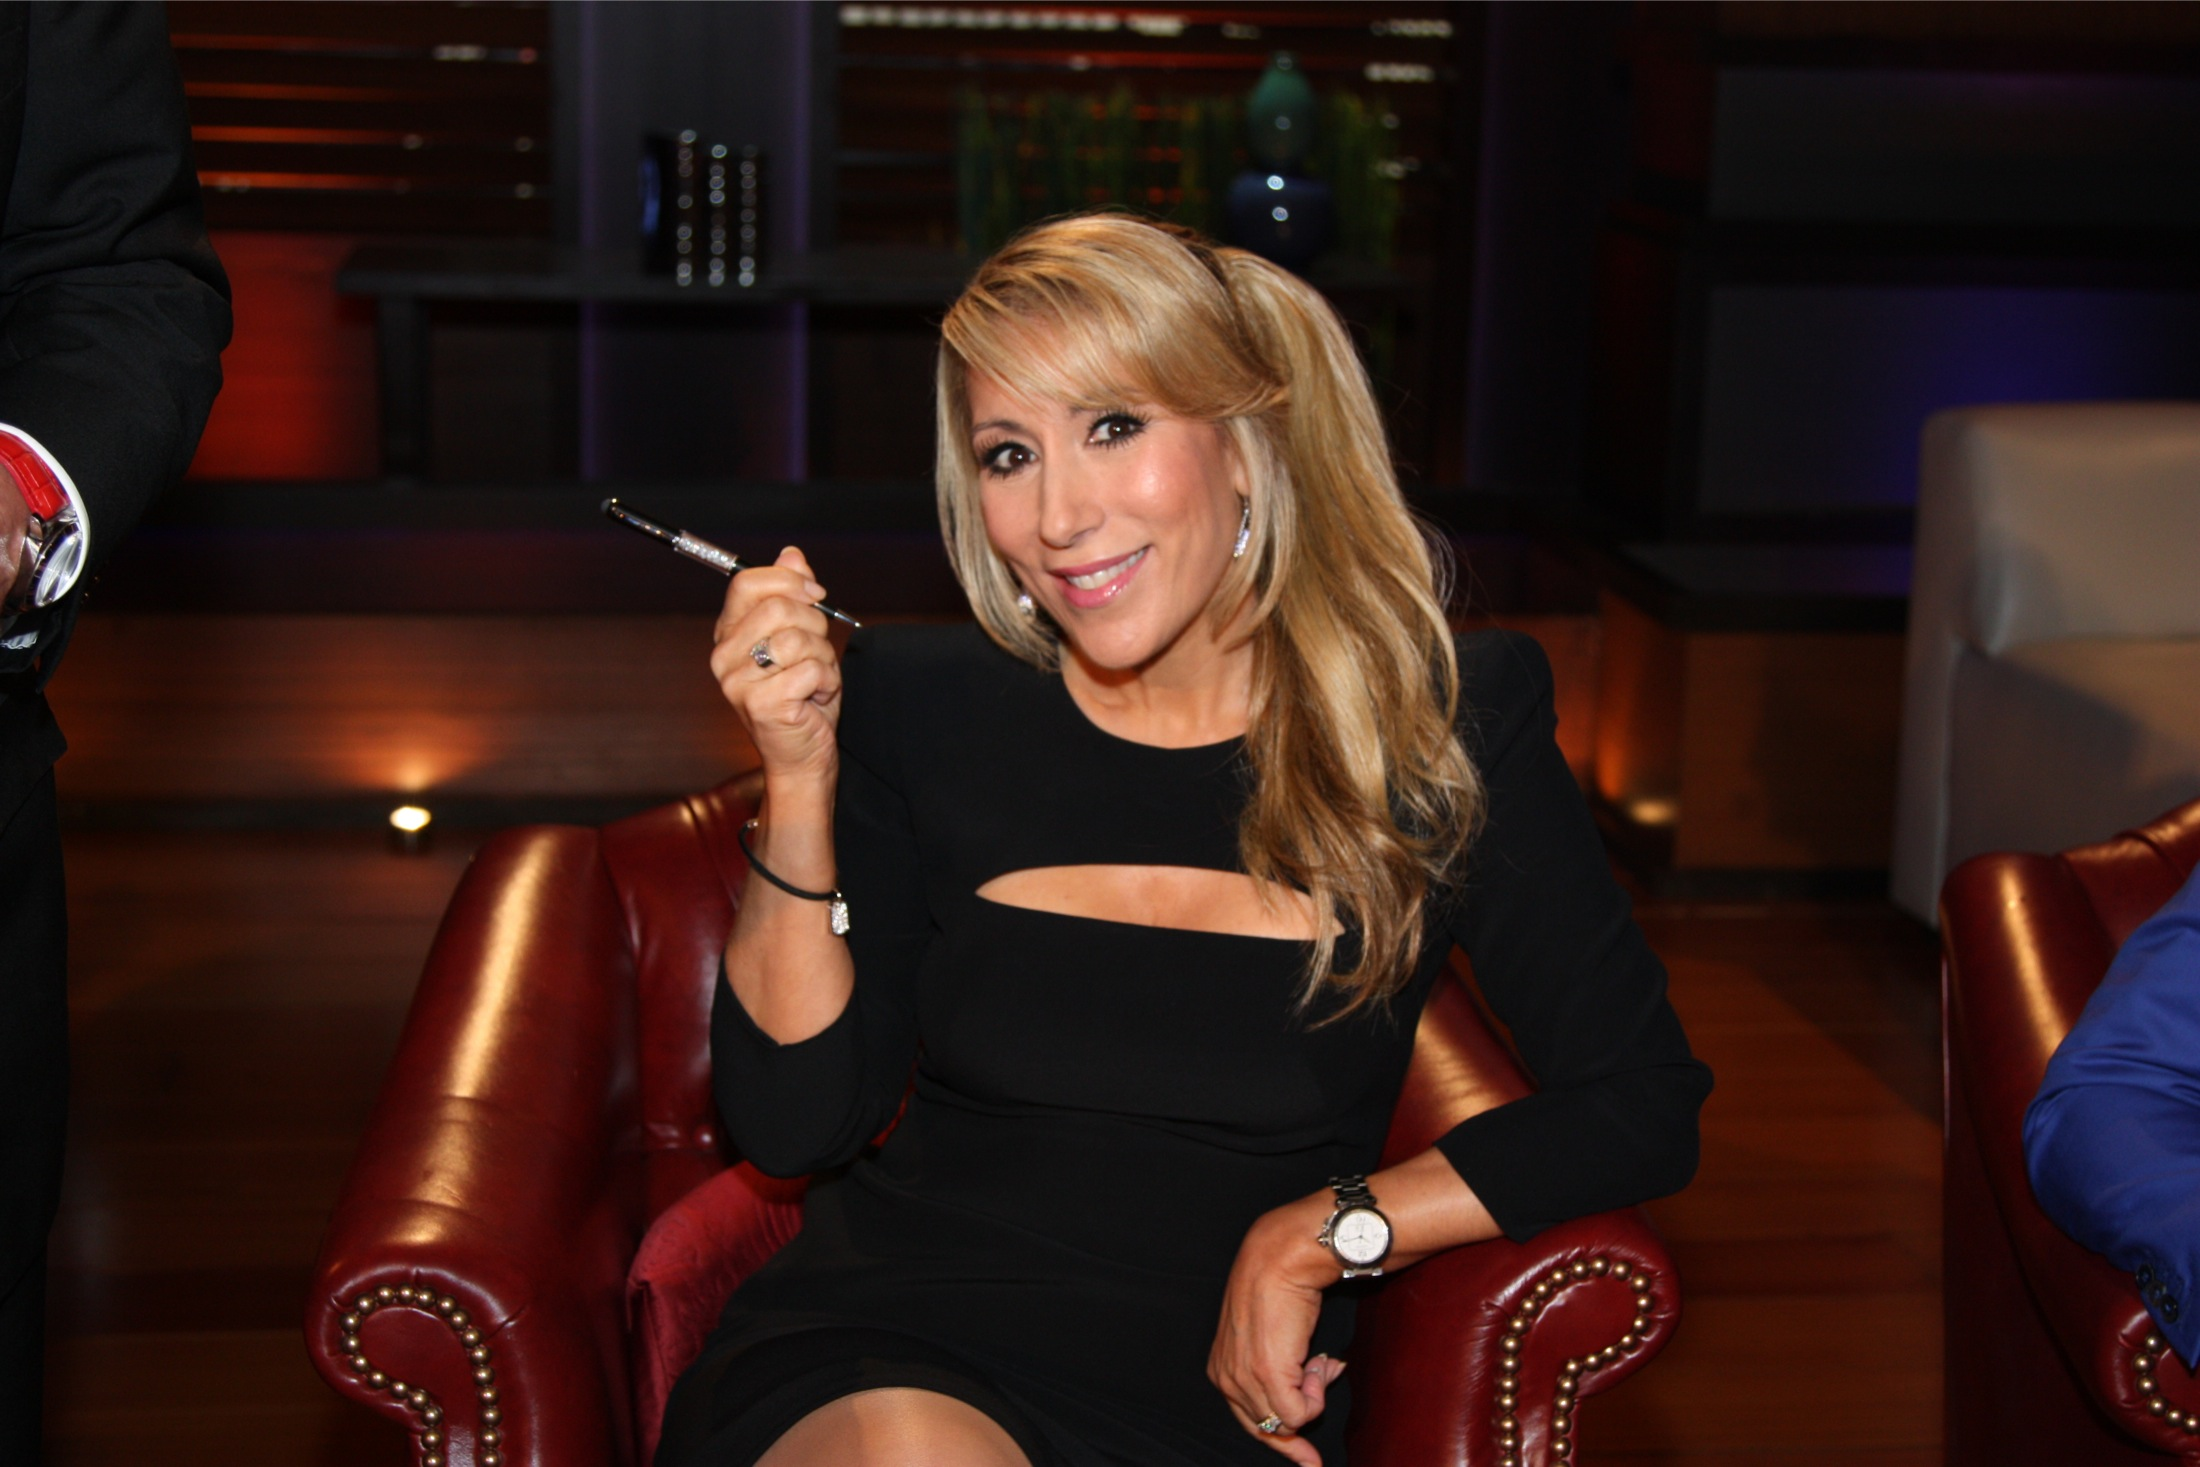 Lori greiner single